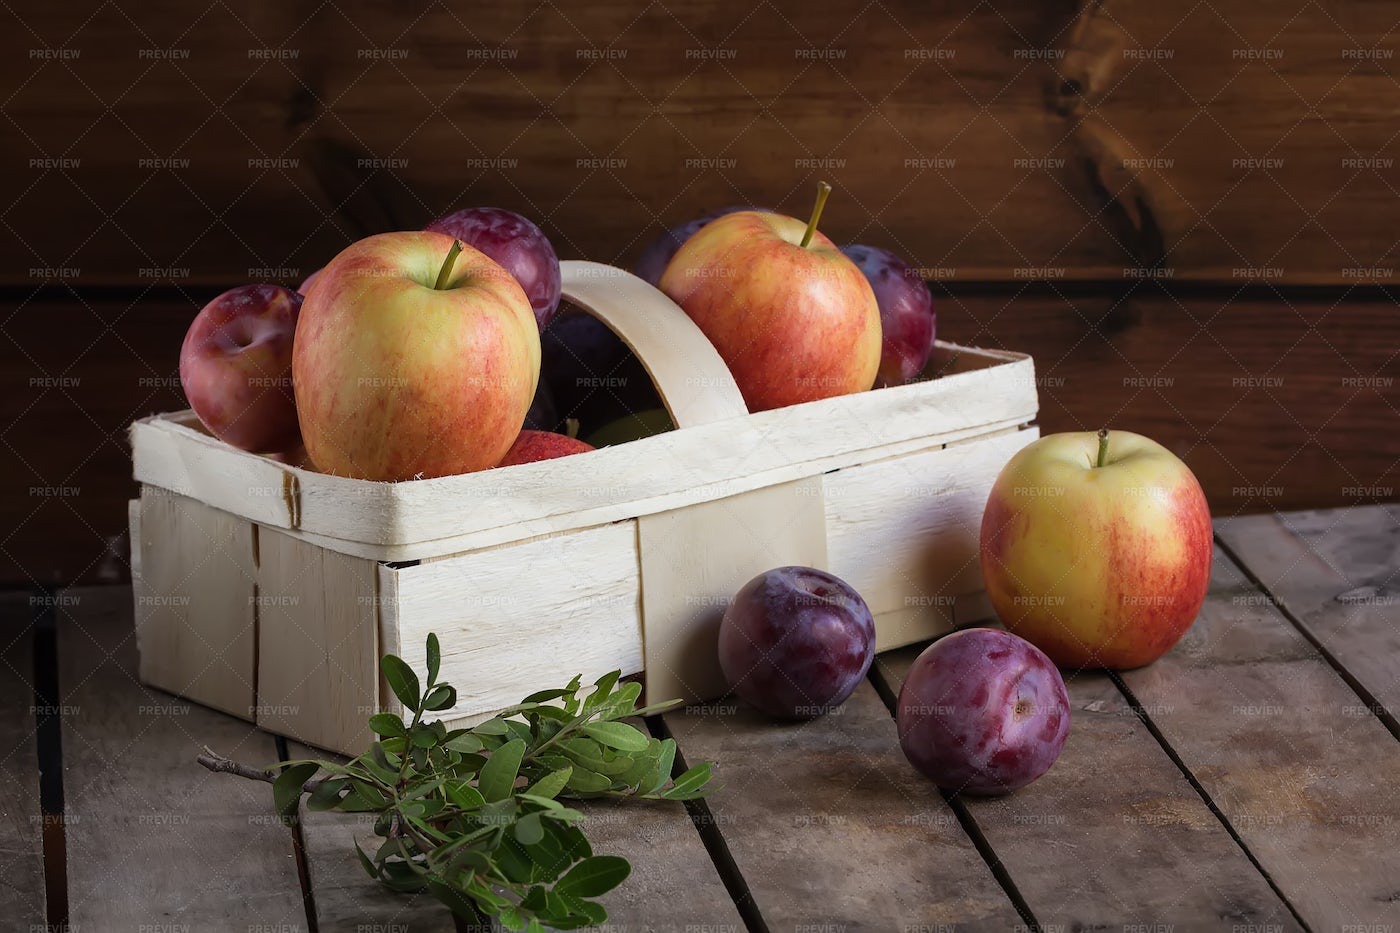 Apples And Plums In A Basket: Stock Photos